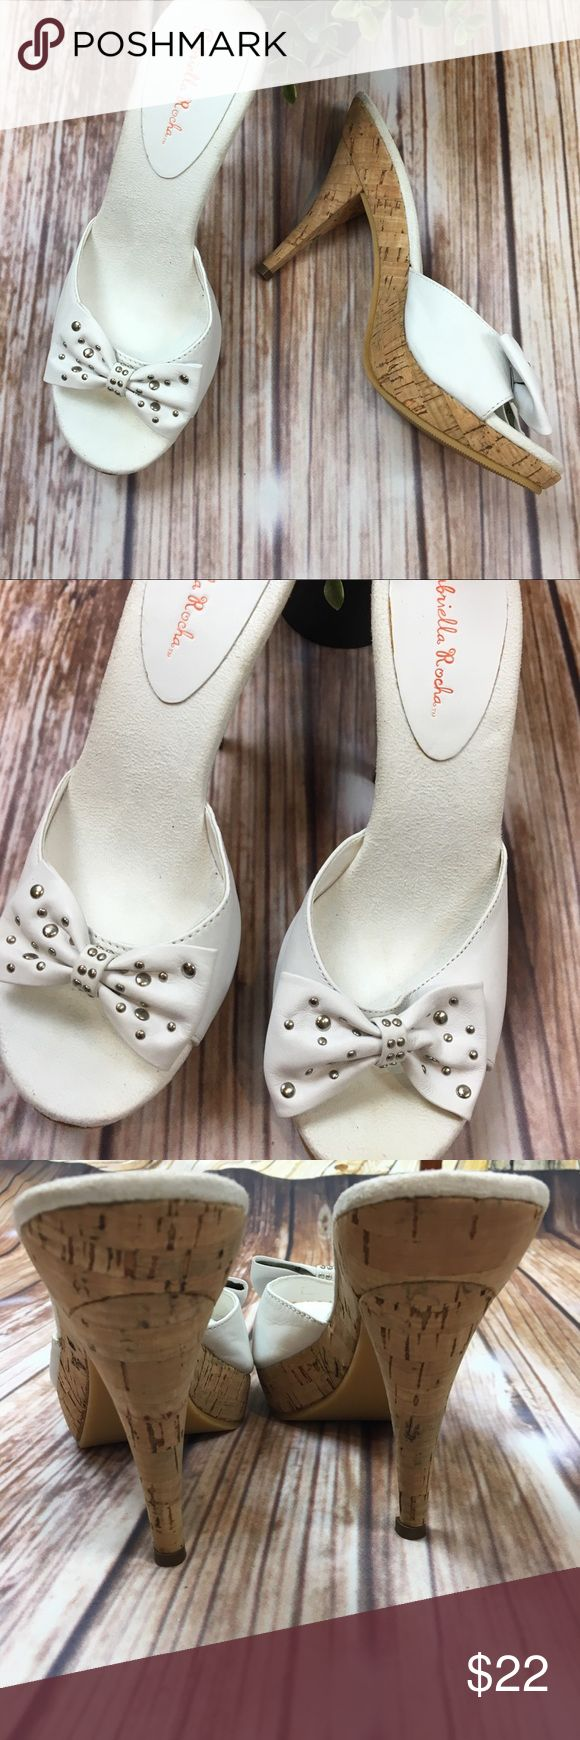 Gabriella Rocha White Studded Bow Heels New 8 These are the perfect heels to go with your spring and summer outfits. They have never been worn. Gabriella Rocha Shoes Sandals